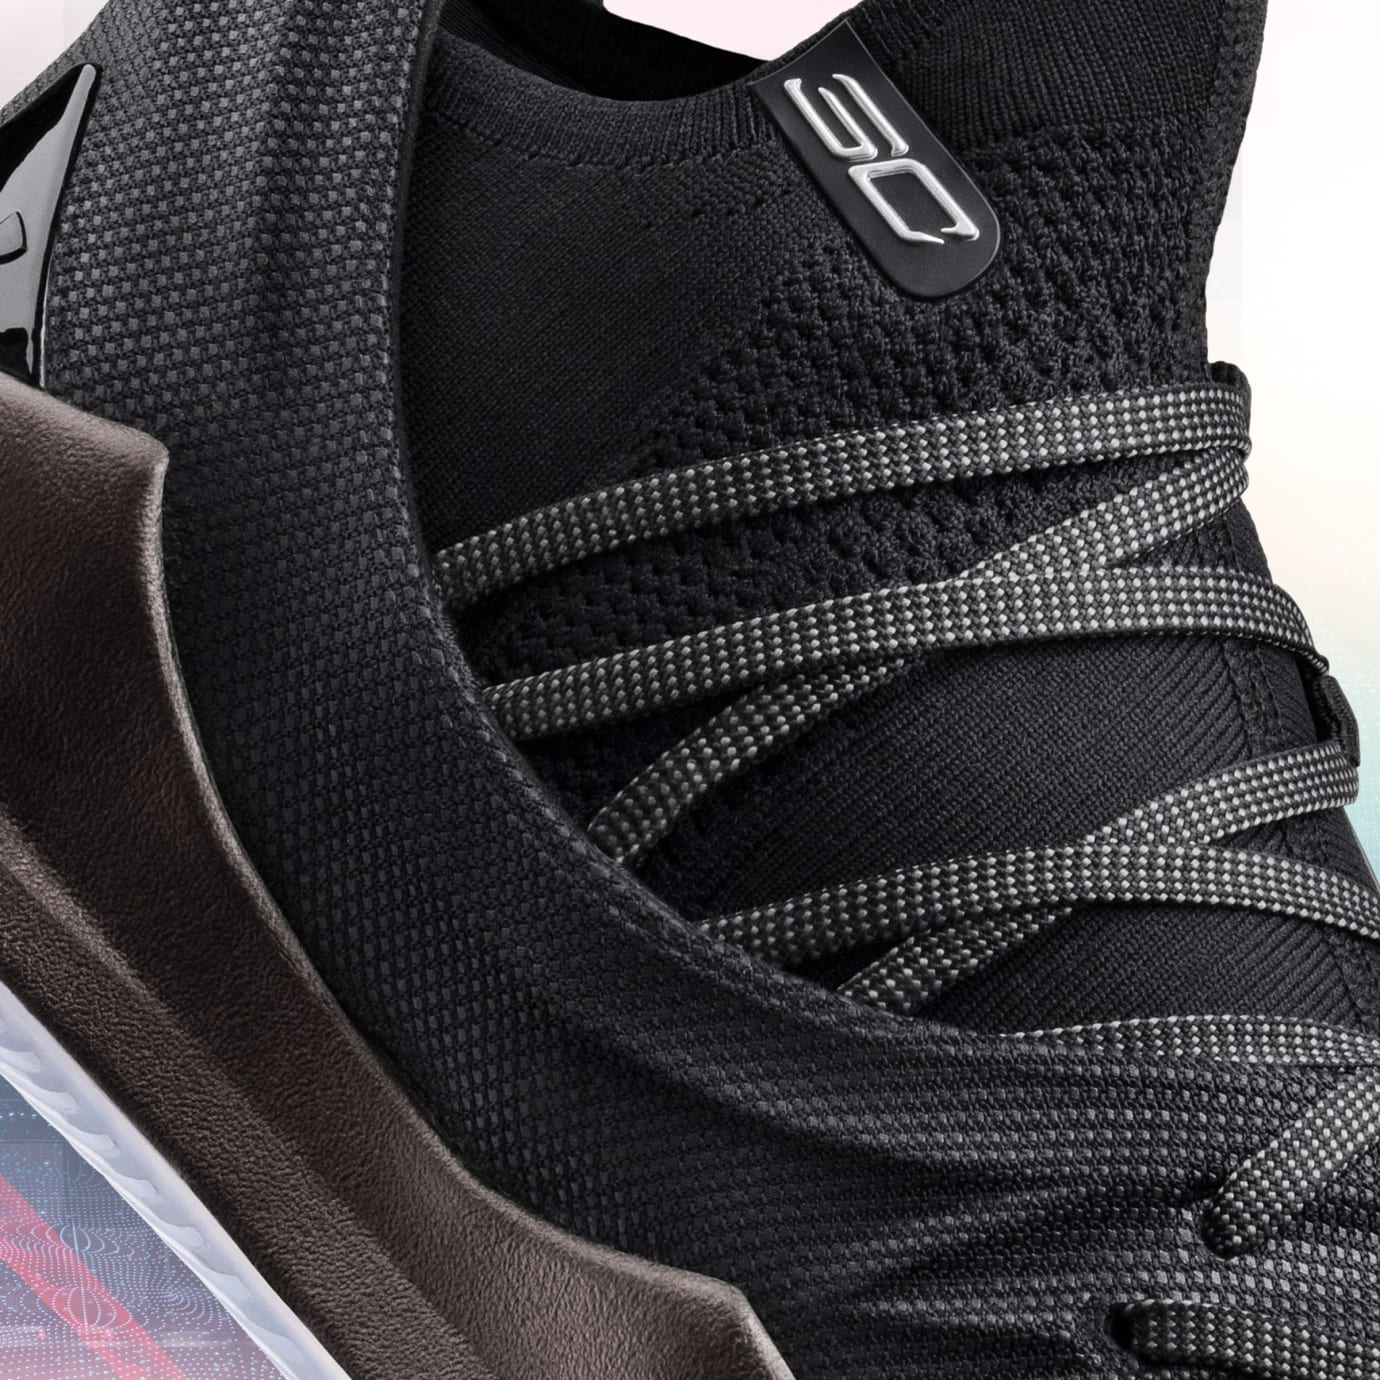 Under Armour Curry 5 'Pi Day' (Midfoot)